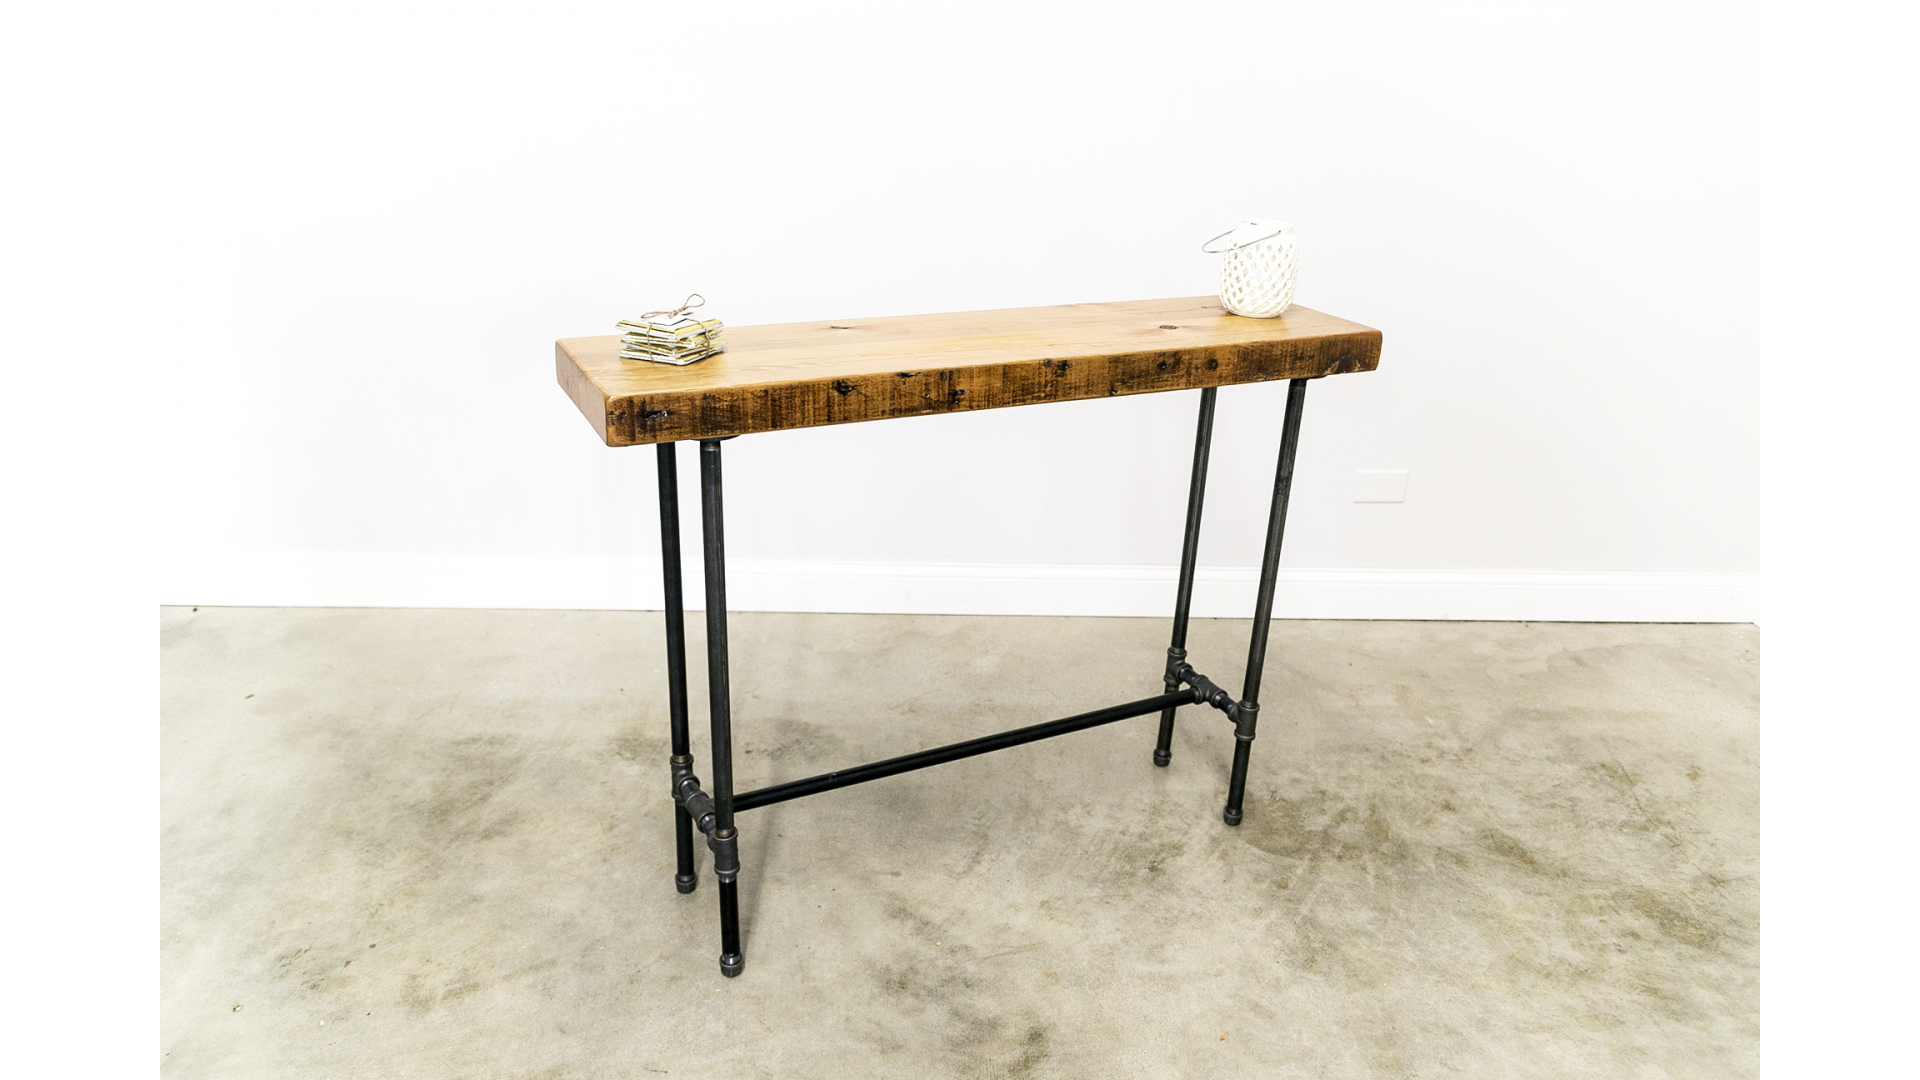 Astounding Industrial Console Table With Cross Bar Machost Co Dining Chair Design Ideas Machostcouk